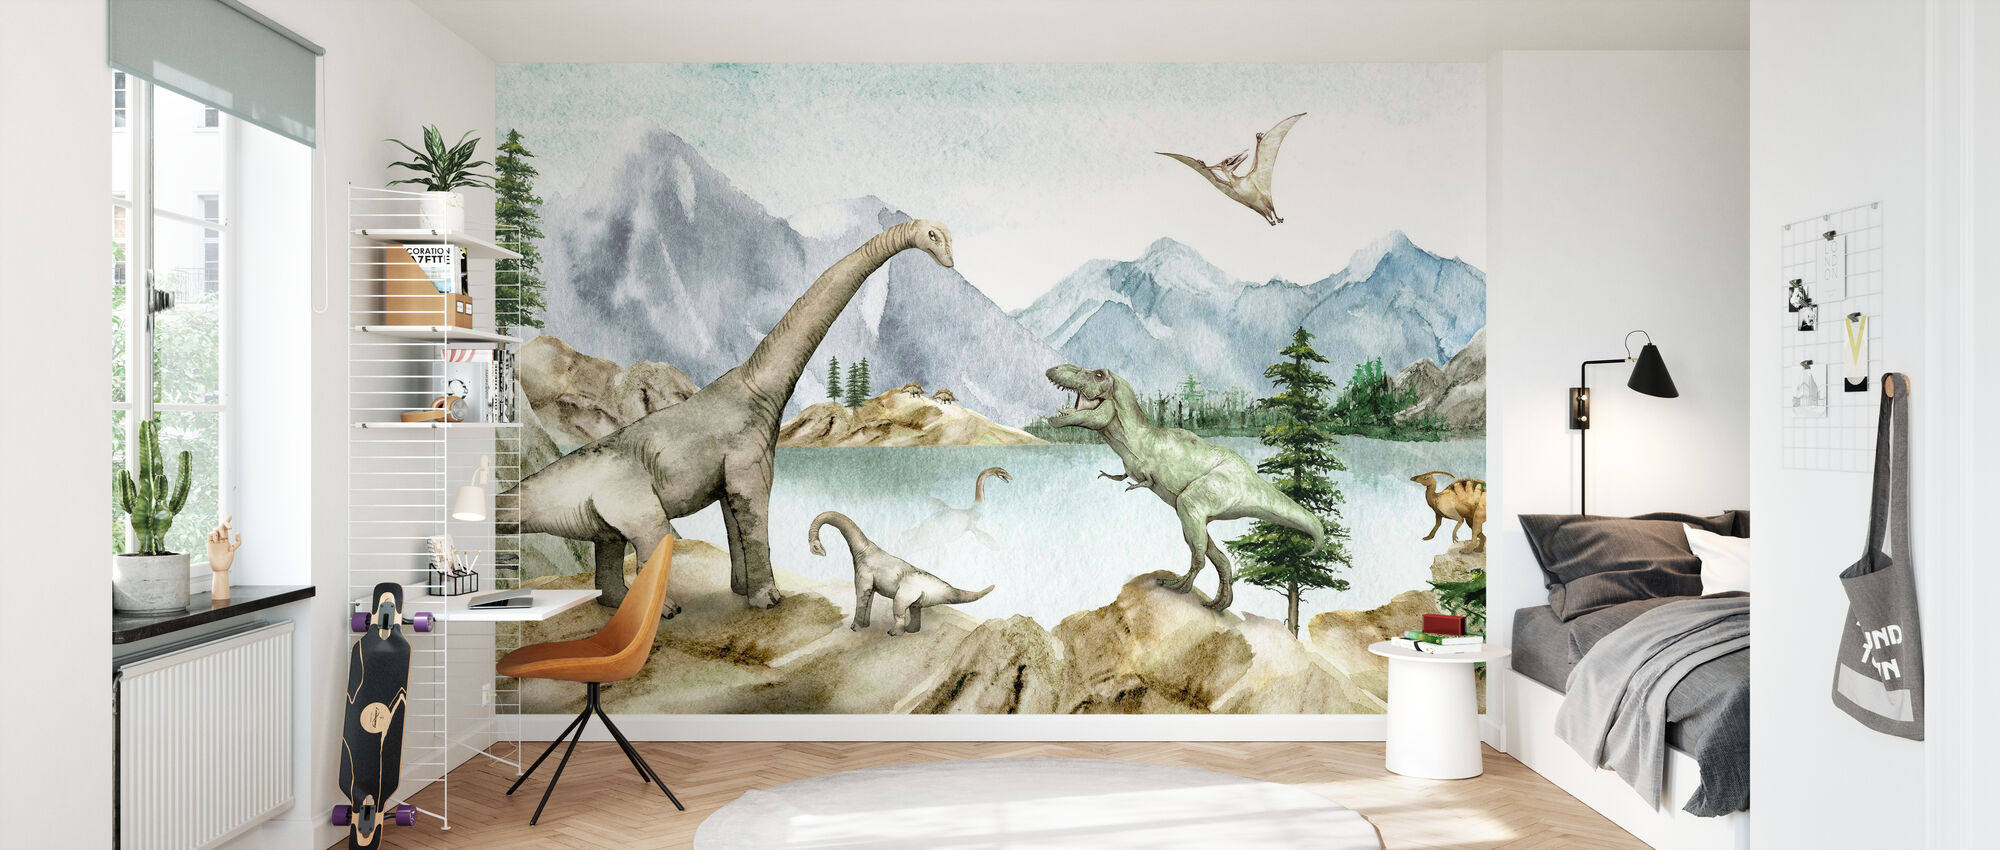 Dino Dreams - Wallpaper - Kids Room